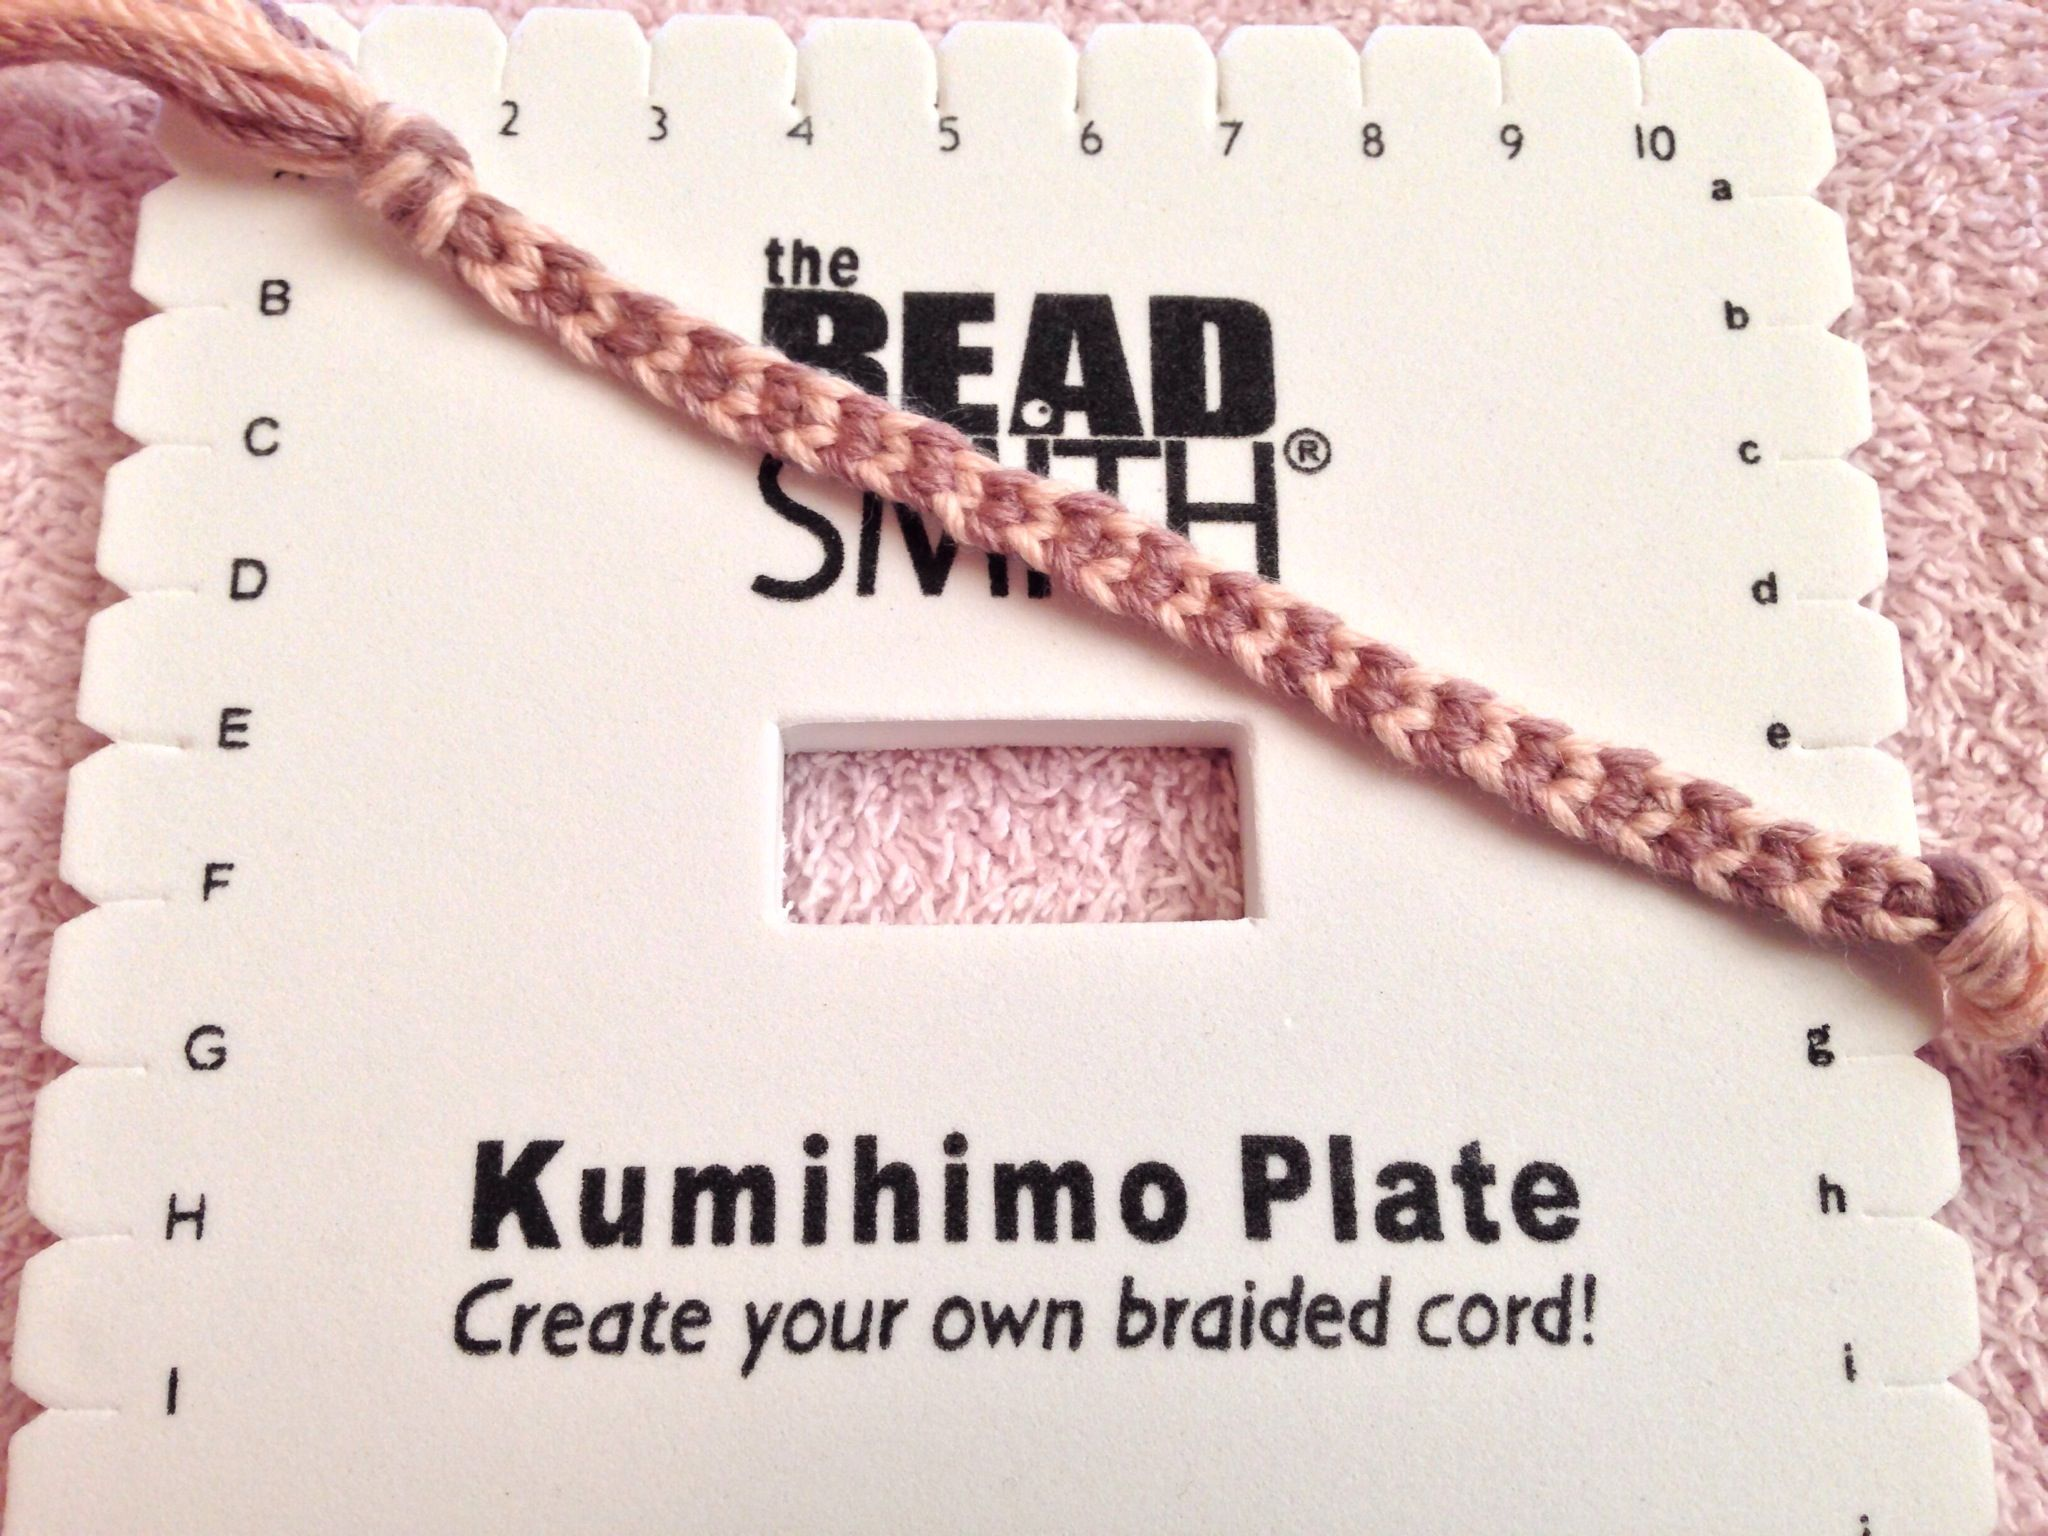 How to Do a Basic Braid on the Kumihimo Square | Receta | Pulseras y ...